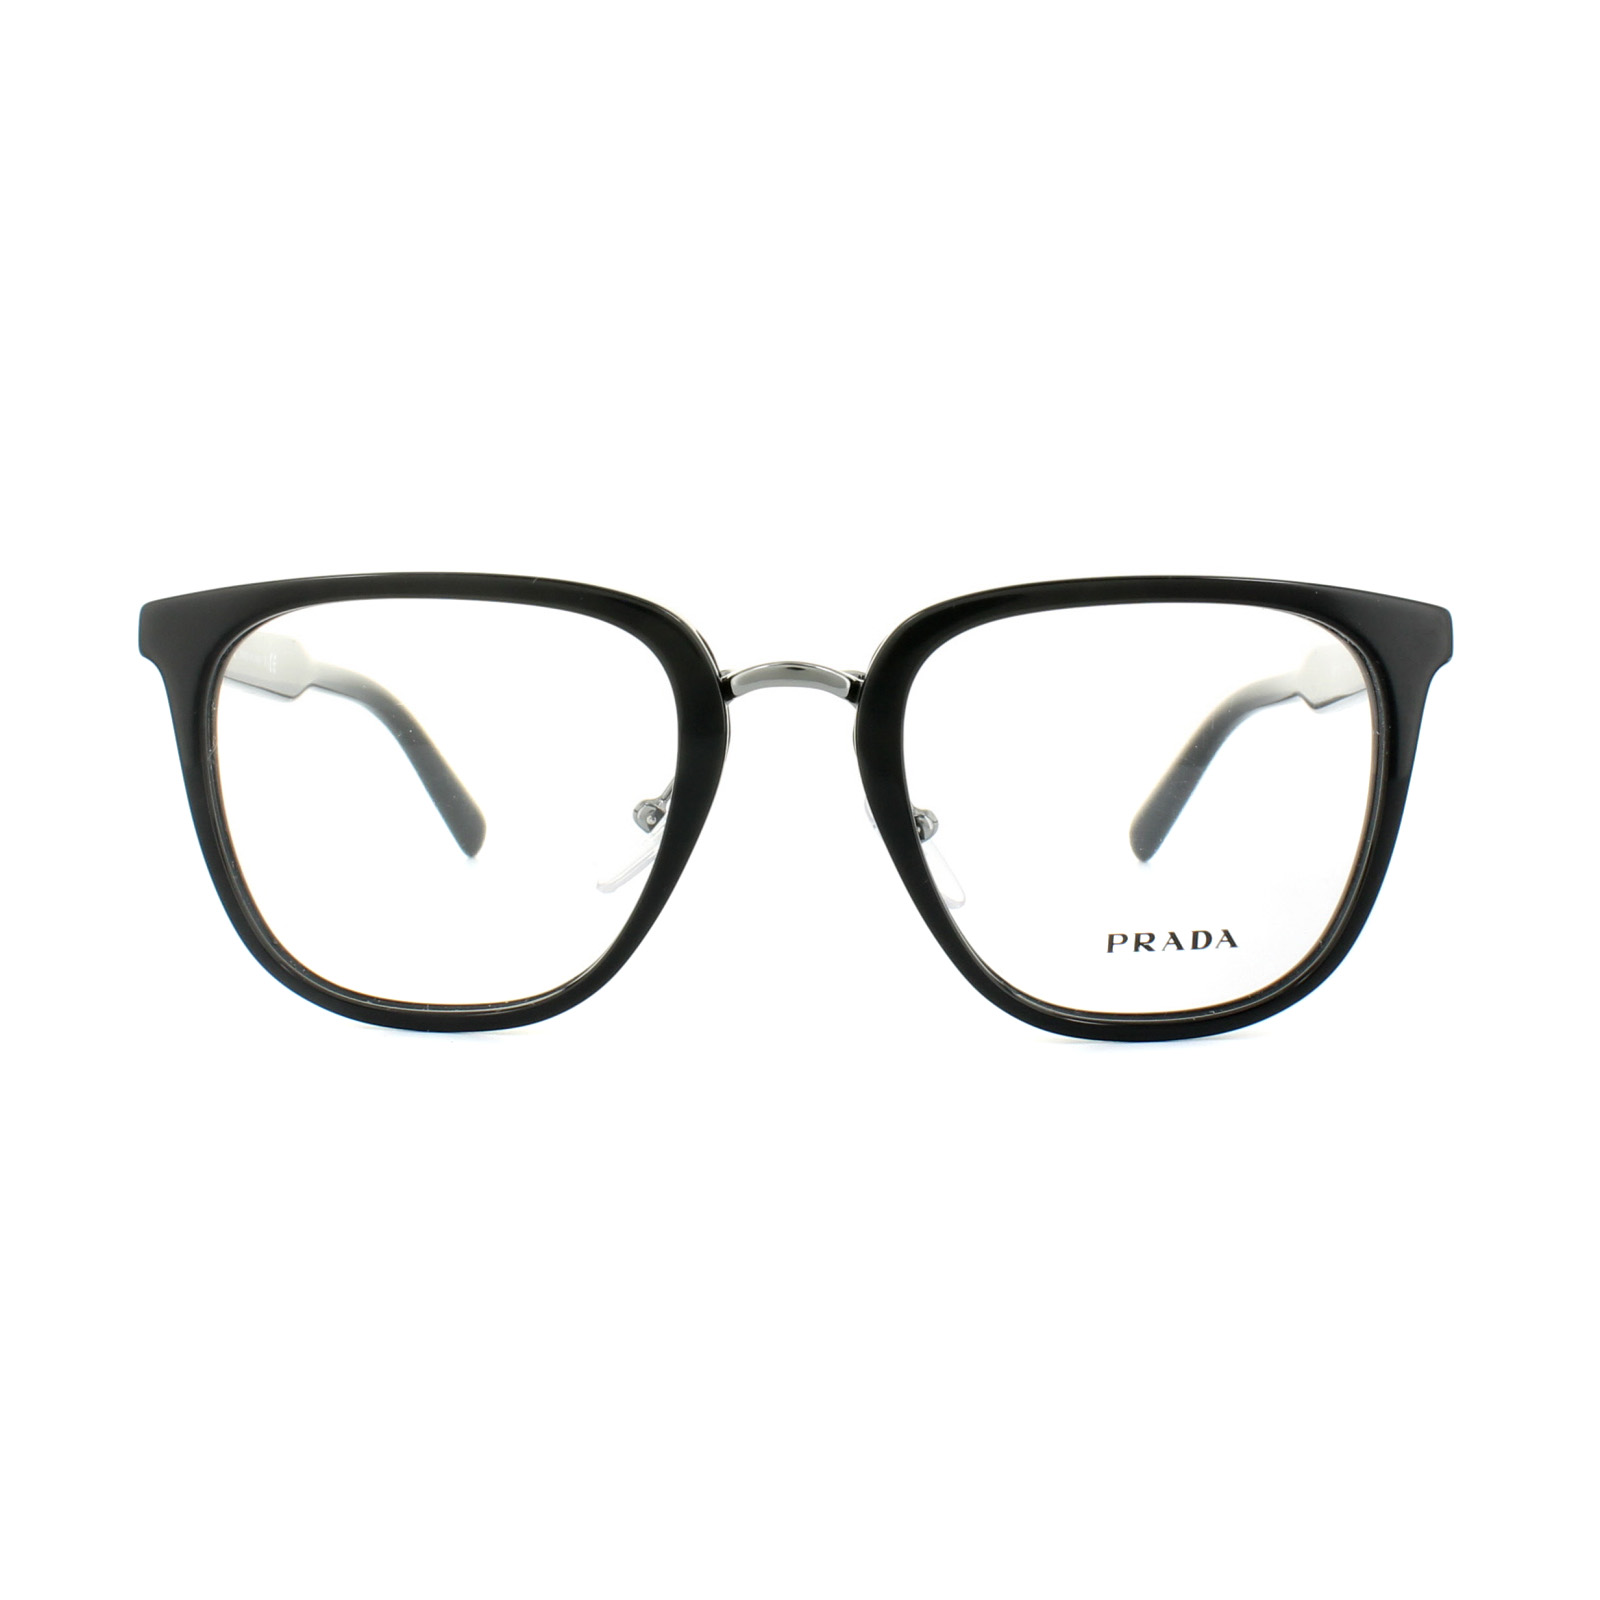 3b448cd0fb Cheap Prada PR 10TV Glasses Frames - Discounted Sunglasses